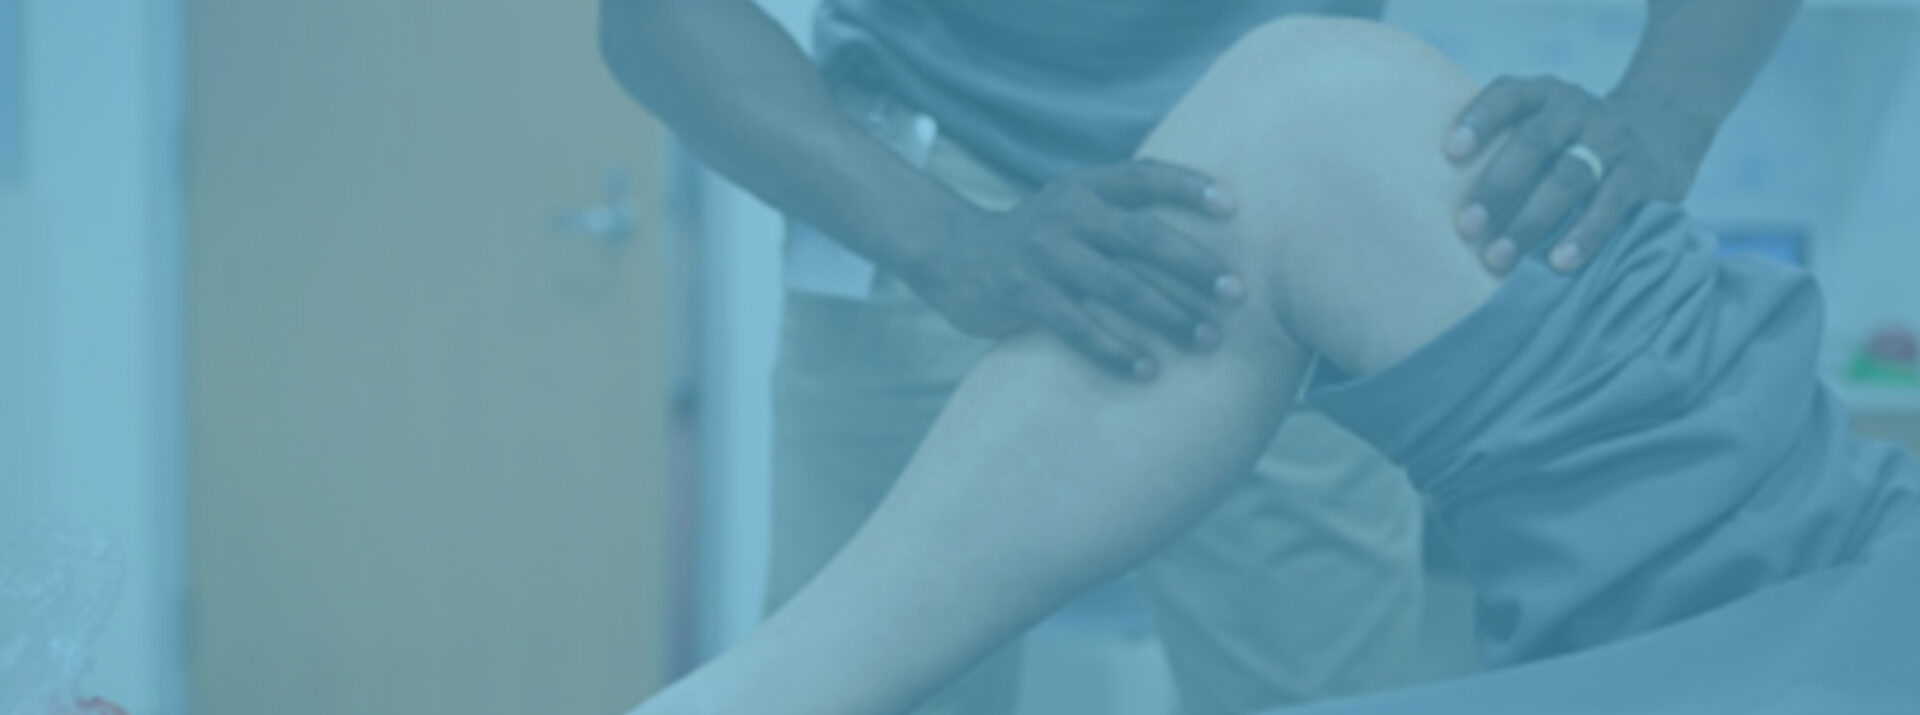 Physiotherapy video consultations available